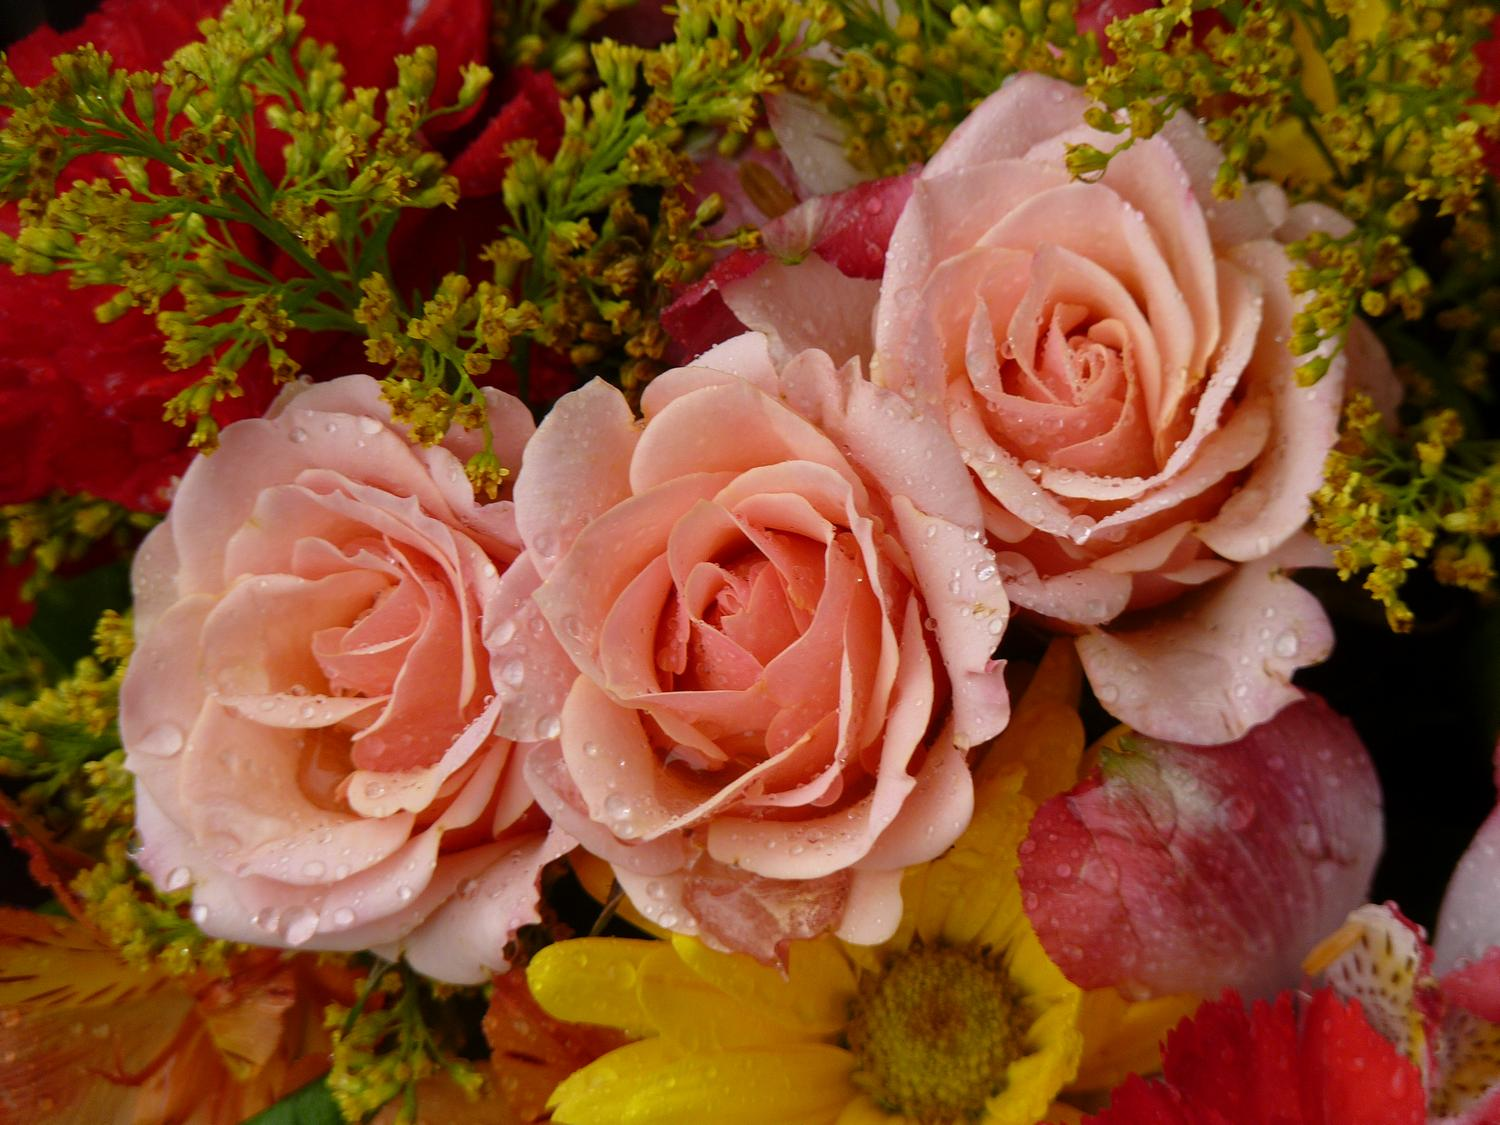 - Some pink flowers from the Hobbitt's birthday bouquet. - Panasonic DMC-FZ35 - Tony Karp, design, art, photography, techno-impressionist, techno-impressionism, aerial photography , drone , drones , dji , mavic pro , video , 3D printing - Books -